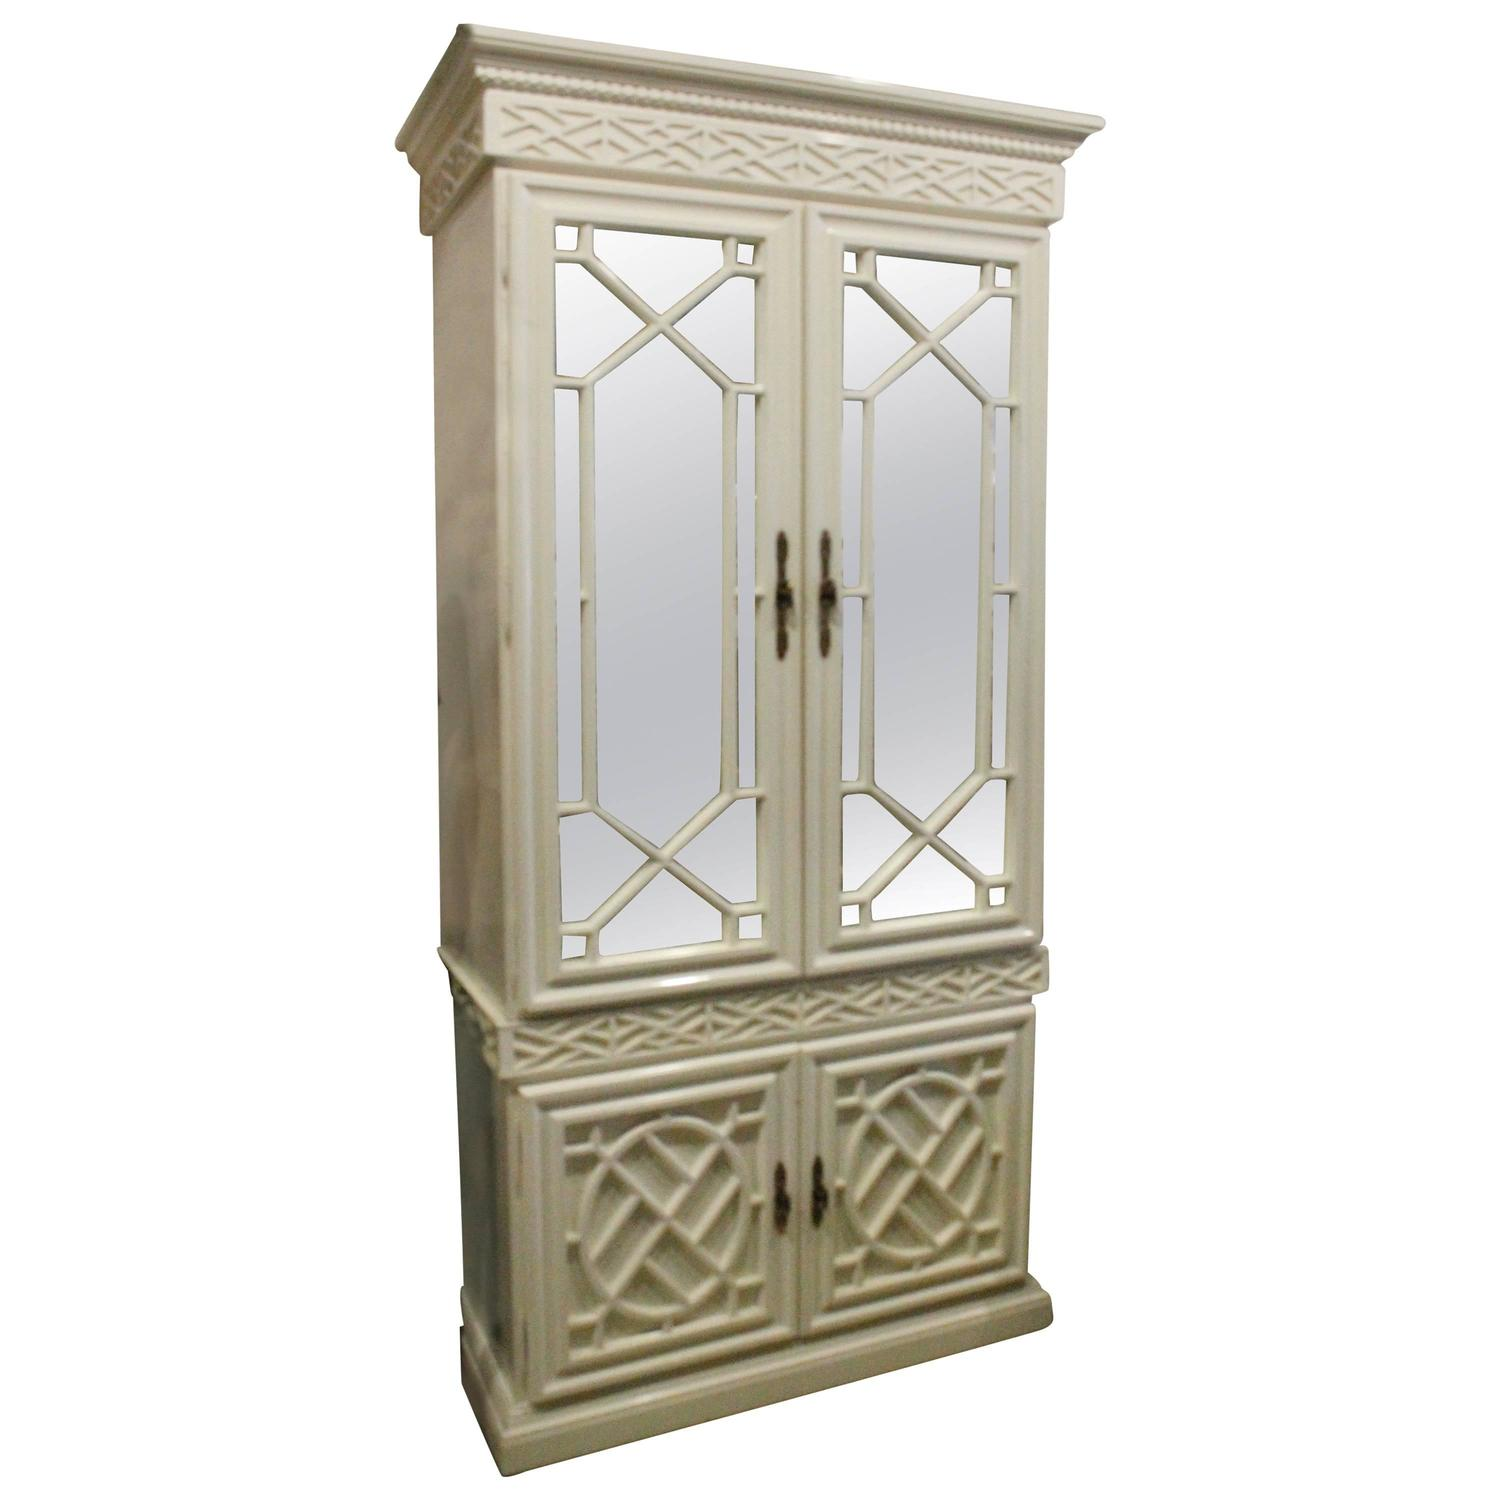 Charmant Vintage Fretwork Chinese Chippendale Cabinet Mirror Chinoiserie Bar China  At 1stdibs